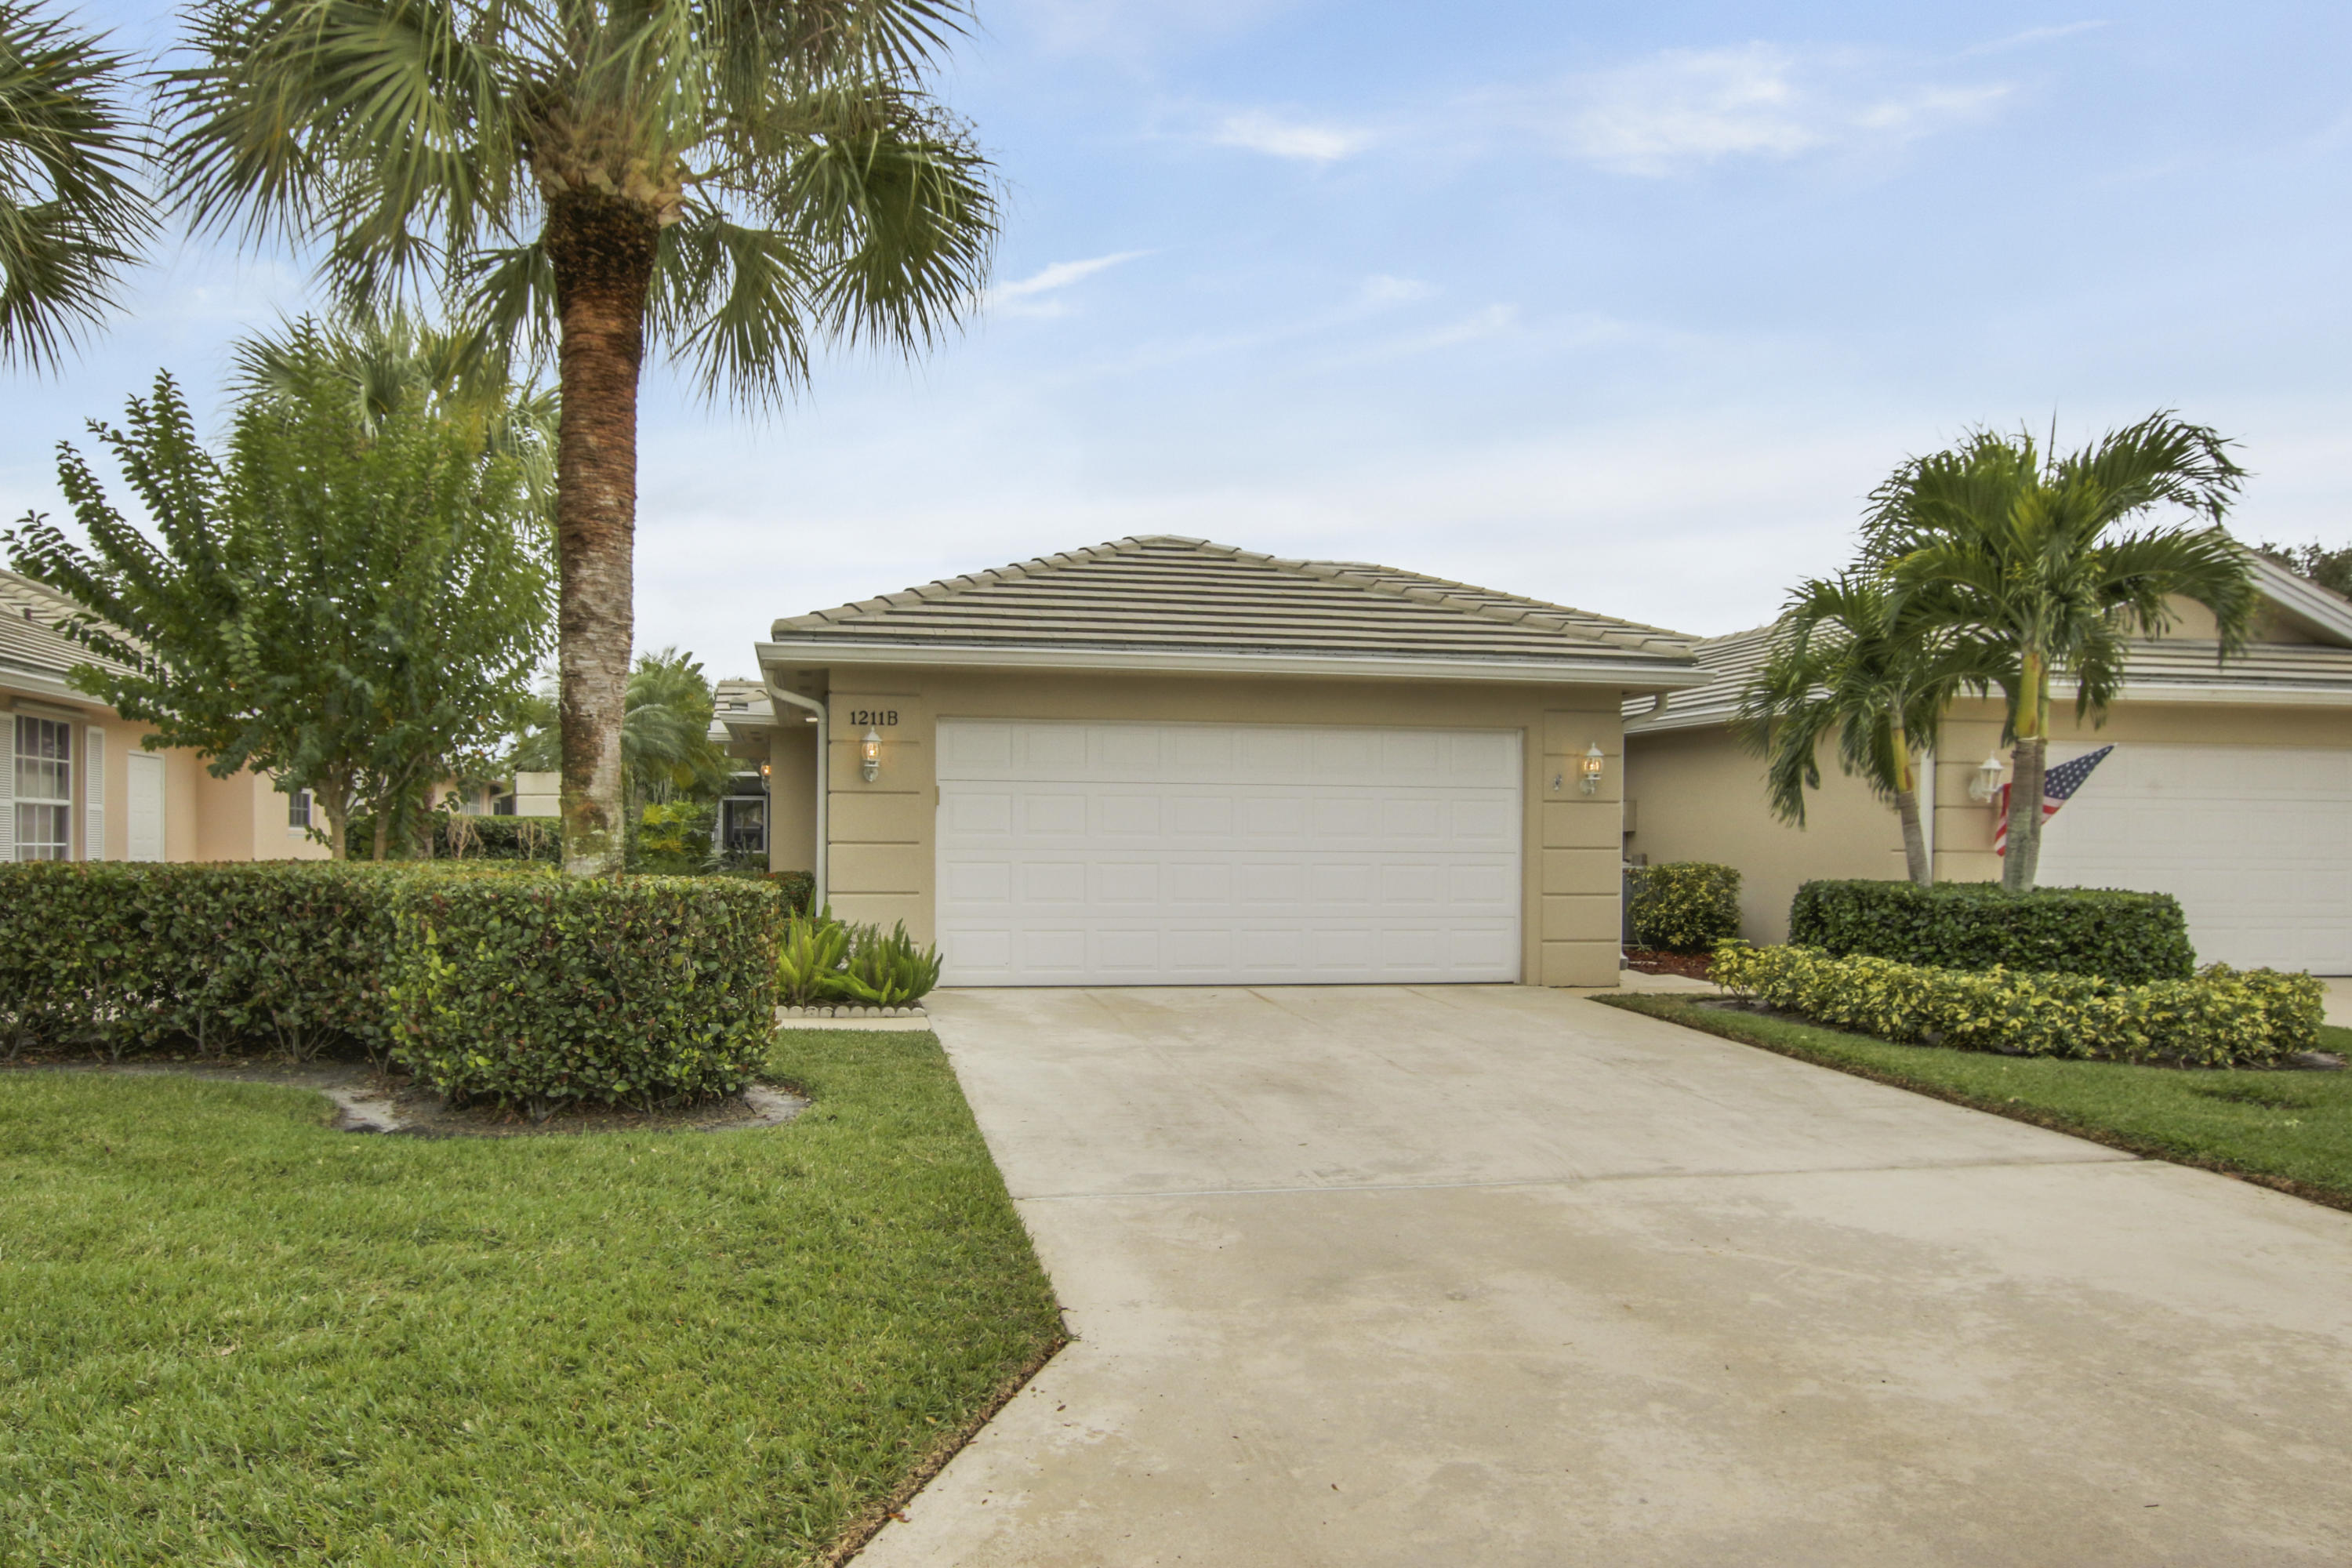 Welcome to the highly sought after Lakes at St. Lucie West; a Divosta community. This extended Capri model is built with solid concrete construction and has serene lake views. From the moment you enter the community you are greeted with beautiful oak tree lined streets and glistening lakes with sidewalks throughout the community for walking and biking. This villa is not to be missed! Features include two bedrooms, two bathrooms, kitchen with granite counter tops and new SS Frigidair appliances, spacious laundry room, two car garage and an oversided screened in lanai perfect for relaxing and entertaining while over looking the beautiful lake. Schedule your private showing today!